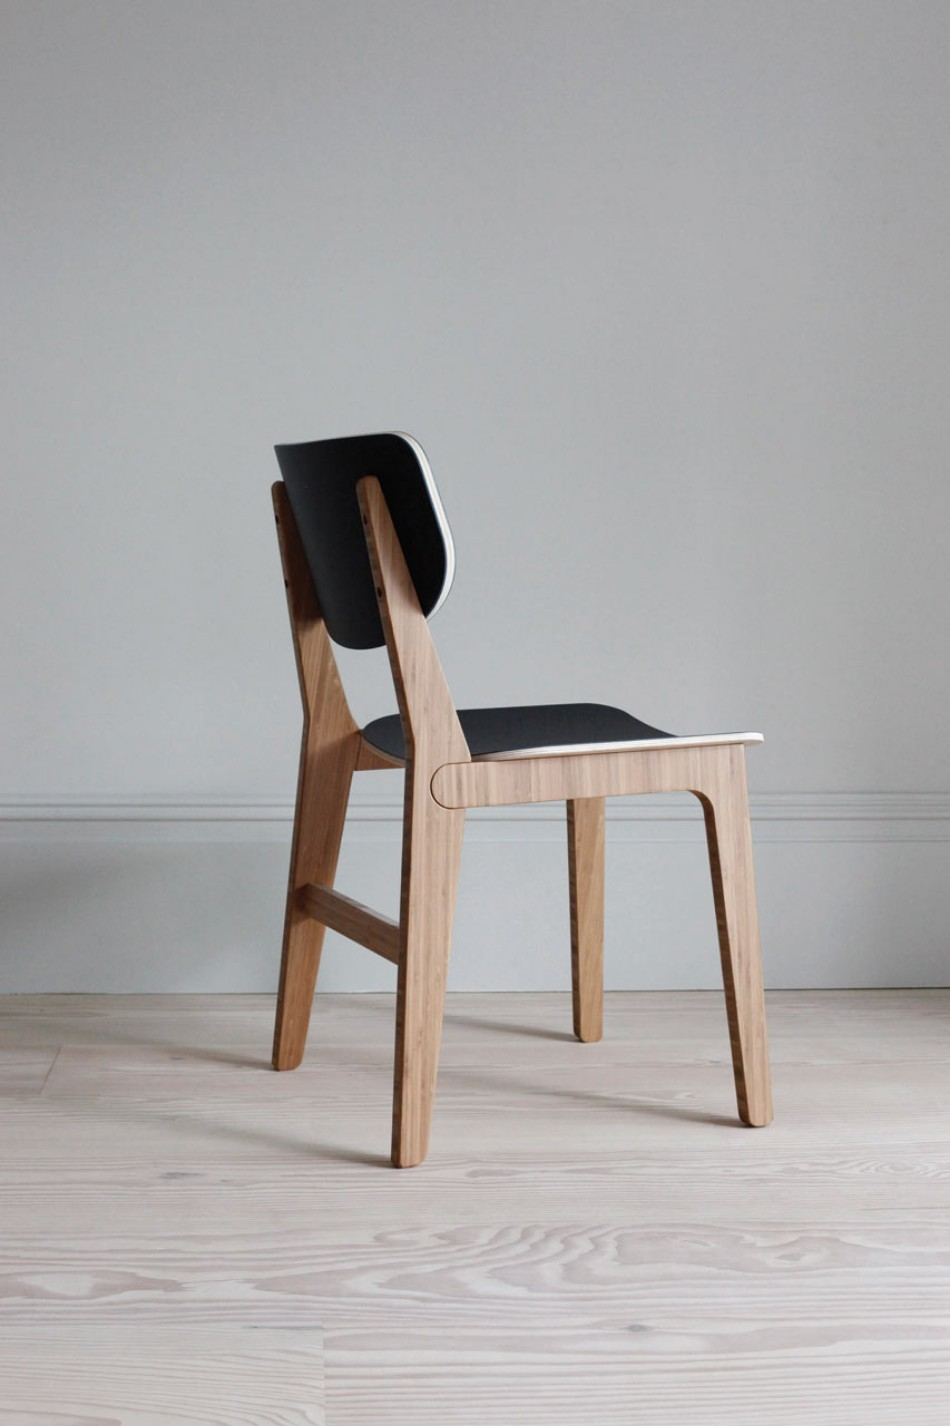 Go Green: Meet The Ecological Dining Chair Renewable Dining Chair Go Green: Meet The Renewable Dining Chair Neighbourhood Chair ByALEX 4